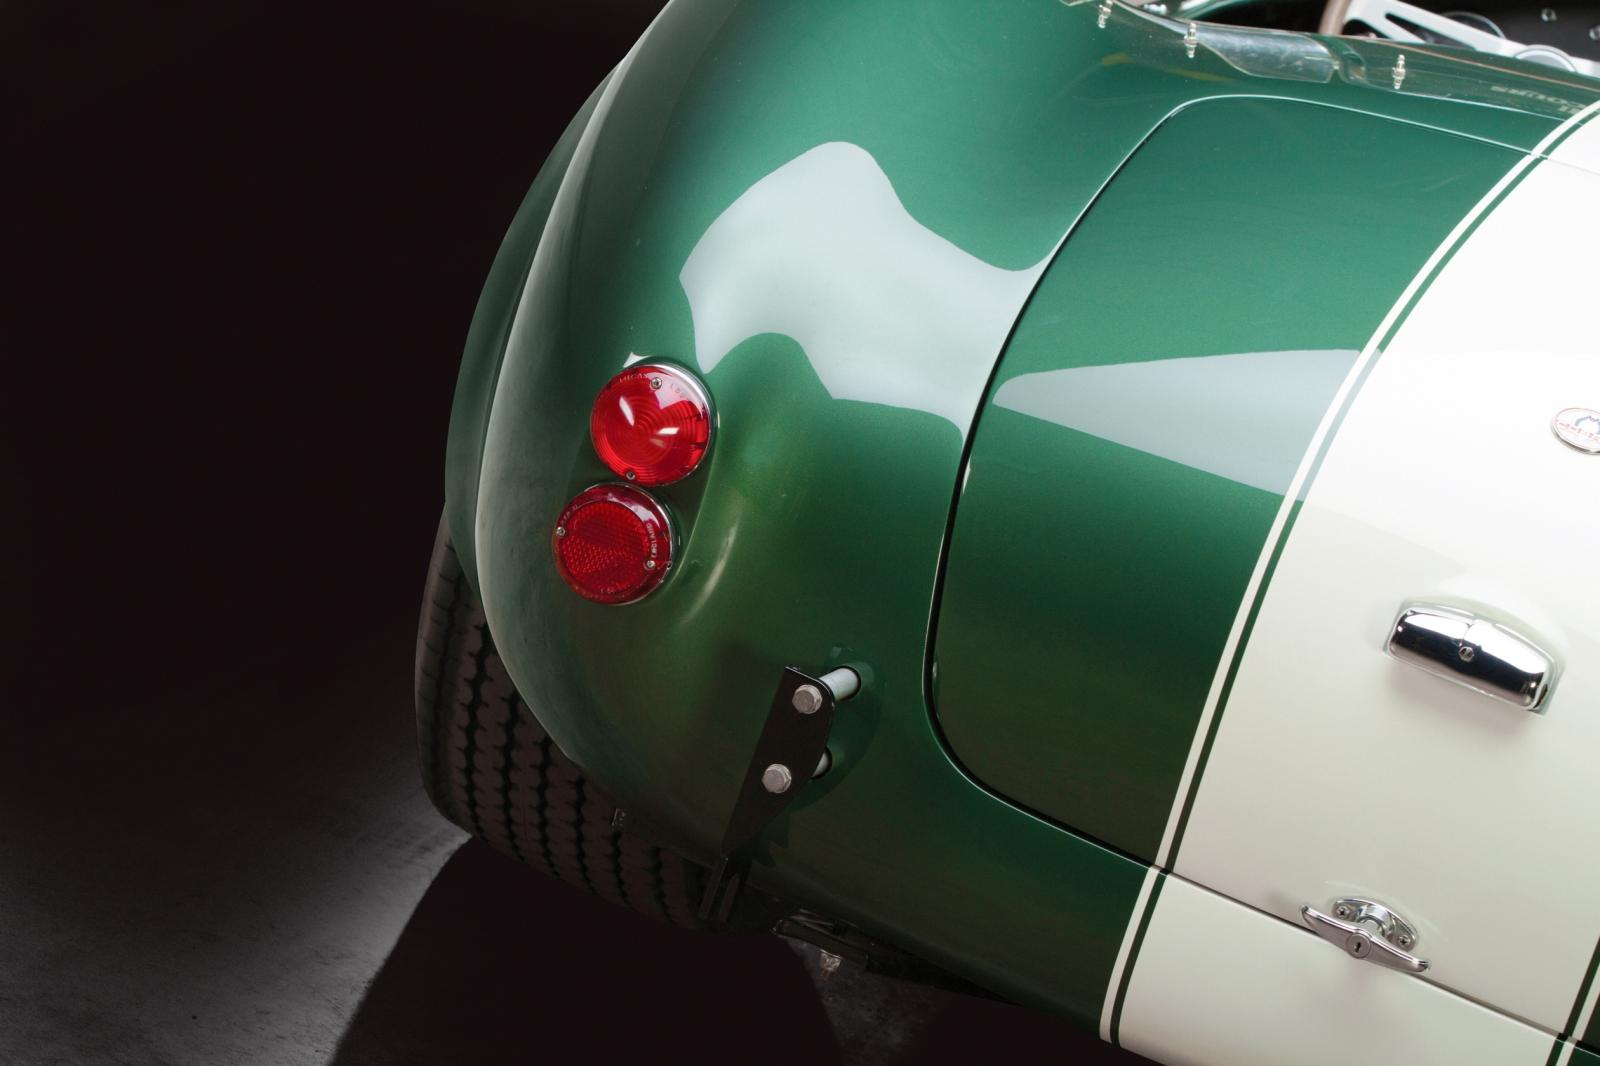 Rm Dallas Preview - ORIGINAL 1967 Shelby 427 Cobra Estimated at $1MM+ 8